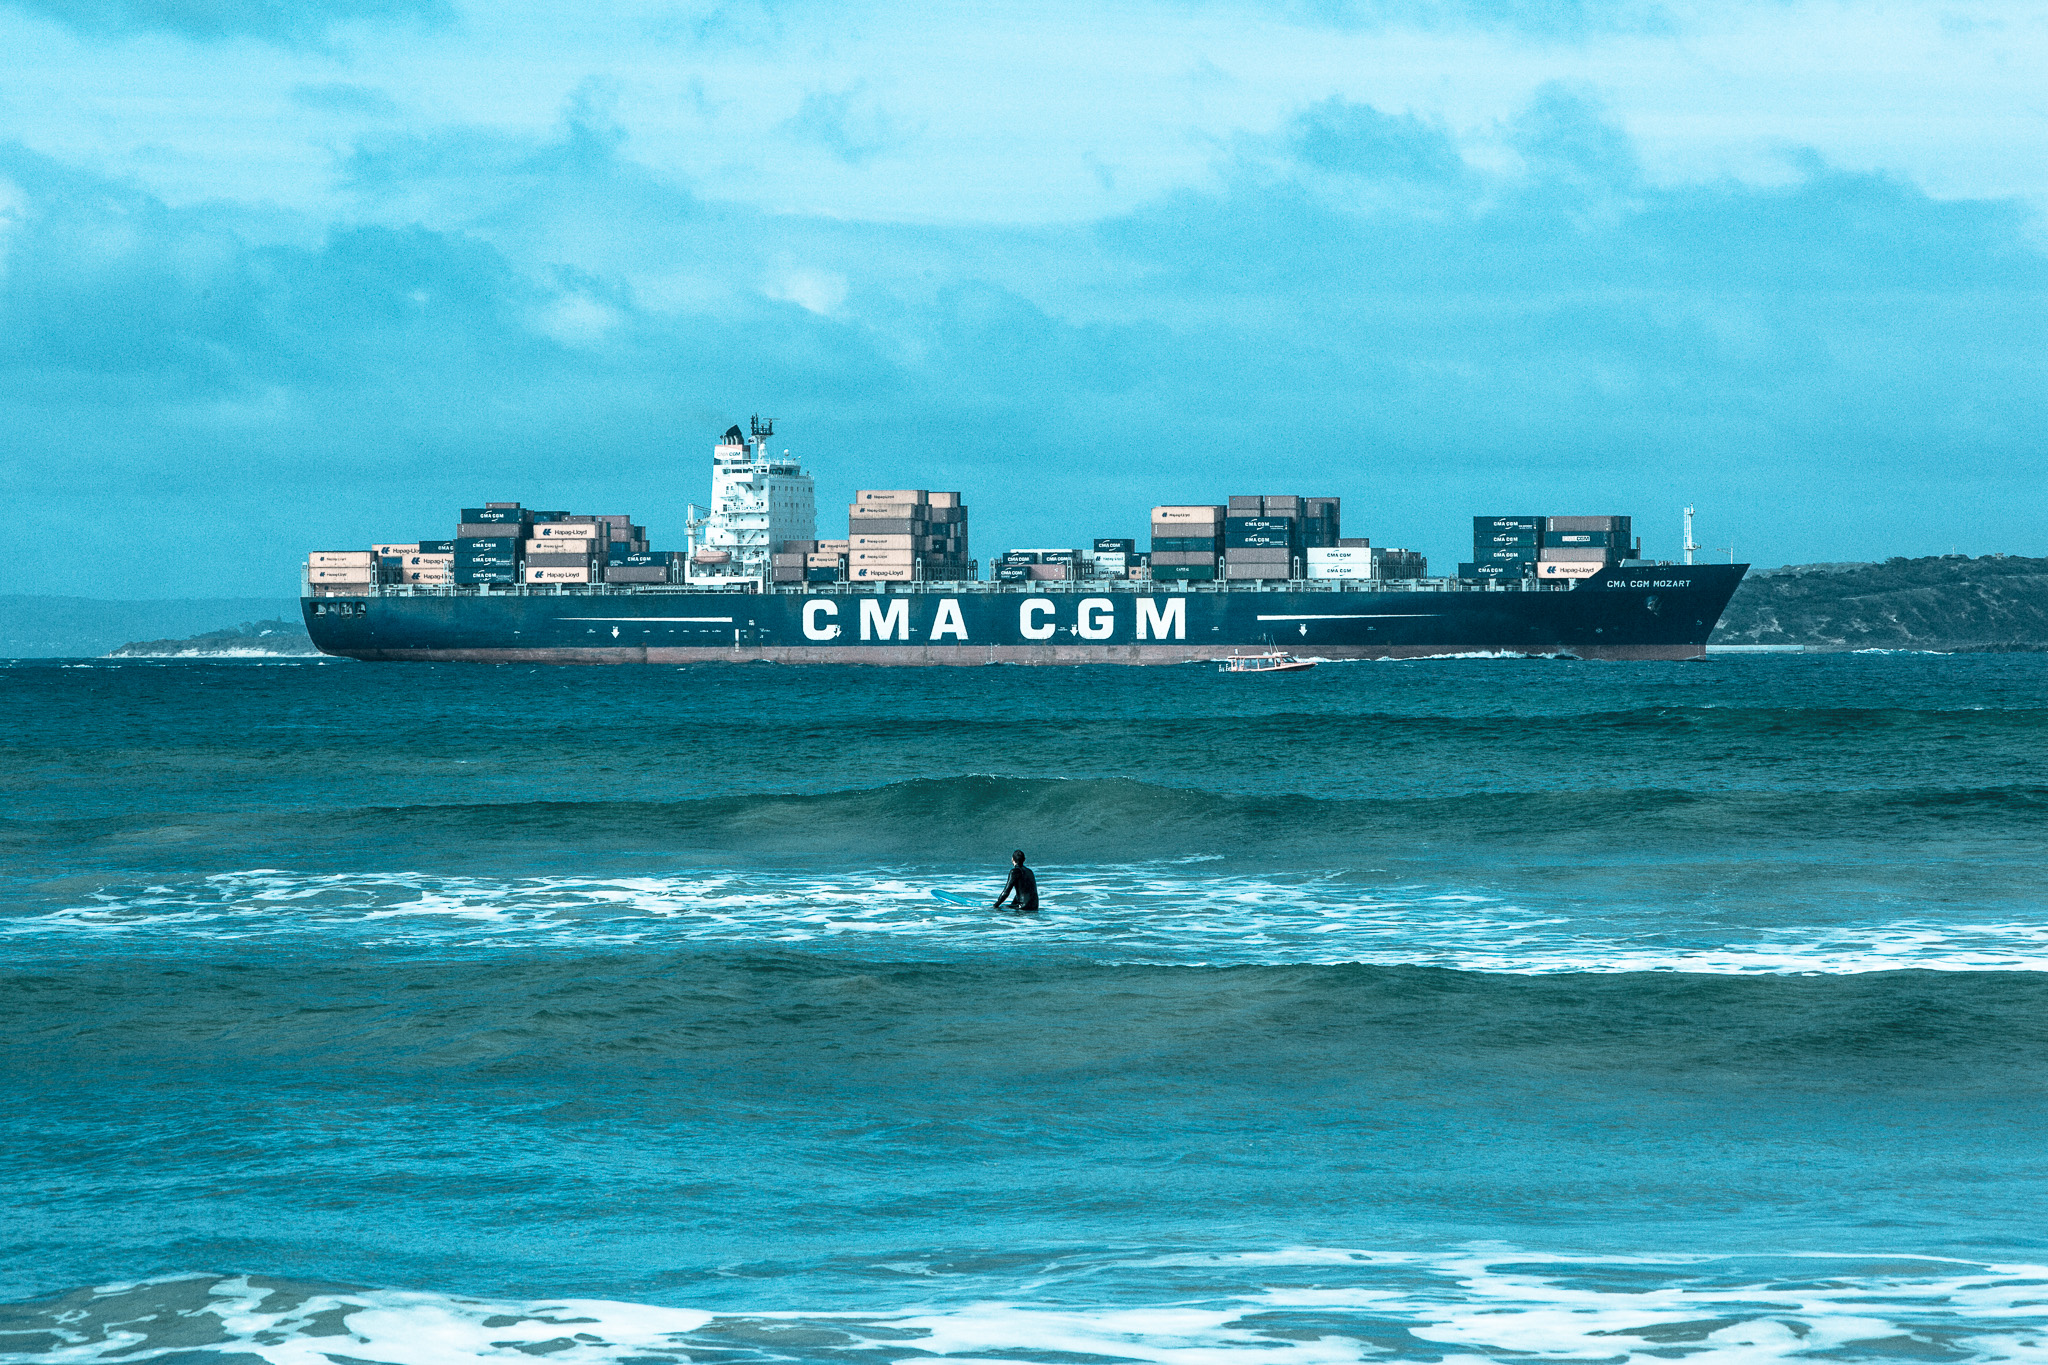 A surfer waits for a wave while watching a CMA CGM container ship sail through Point Lonsdale on 2nd July 2016. Large ships have to follow a precise S-shaped course with a qualified pilot onboard to help them pass between the narrow 2km wide heads.